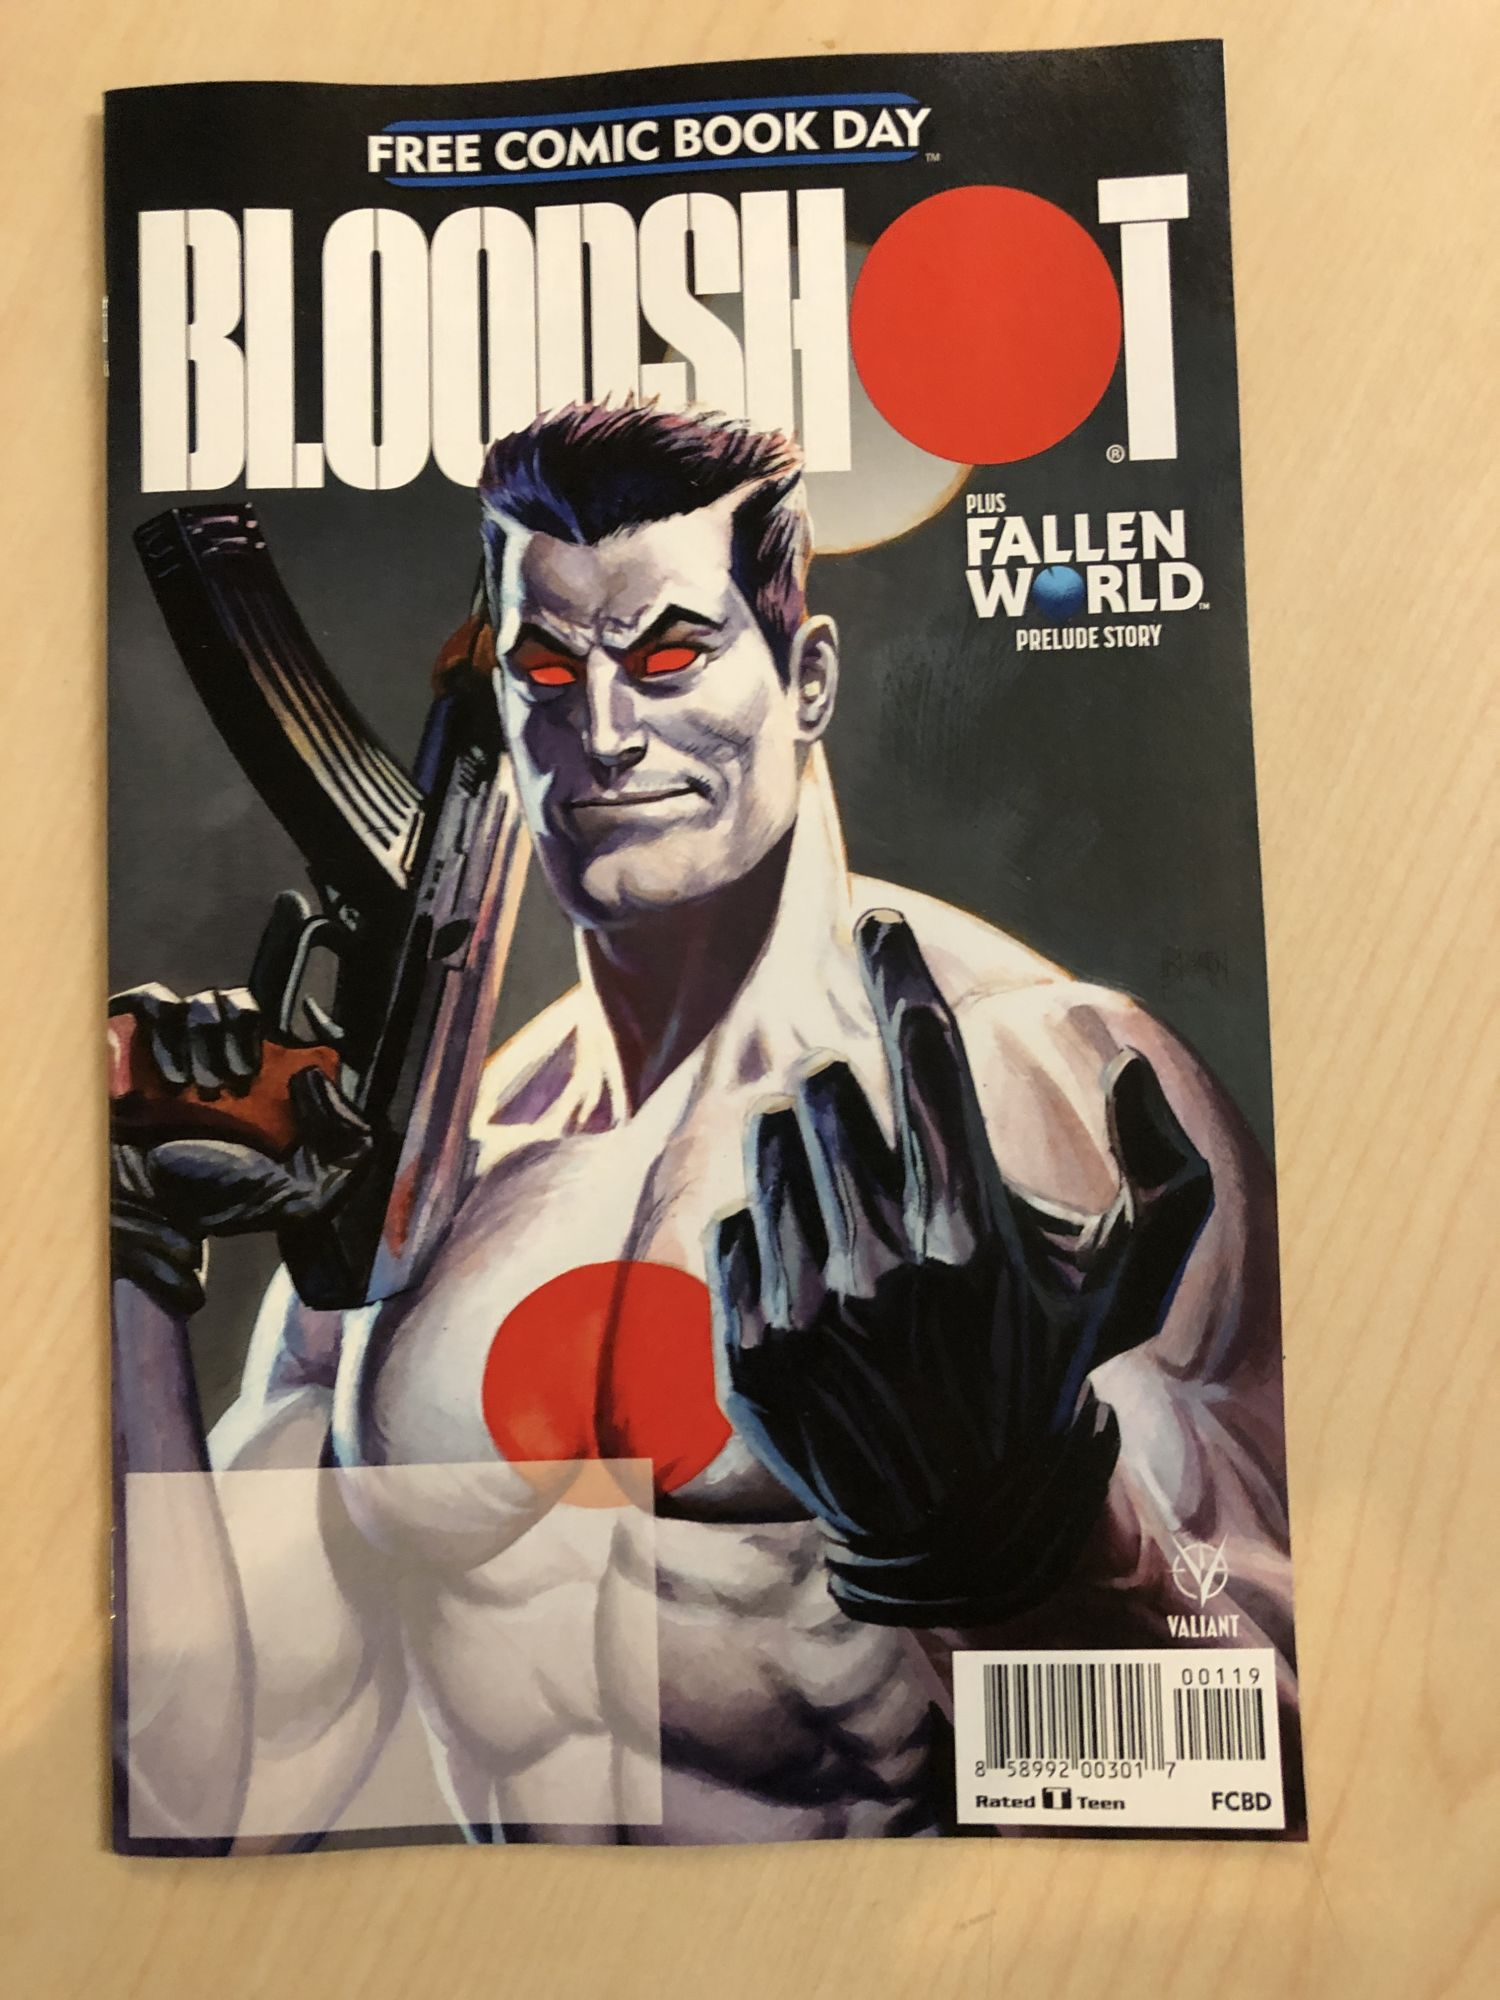 Who Are Bloodshot's New Enemies? Free Comic Book Day Teases But Doesn't Tell All (Spoilers)